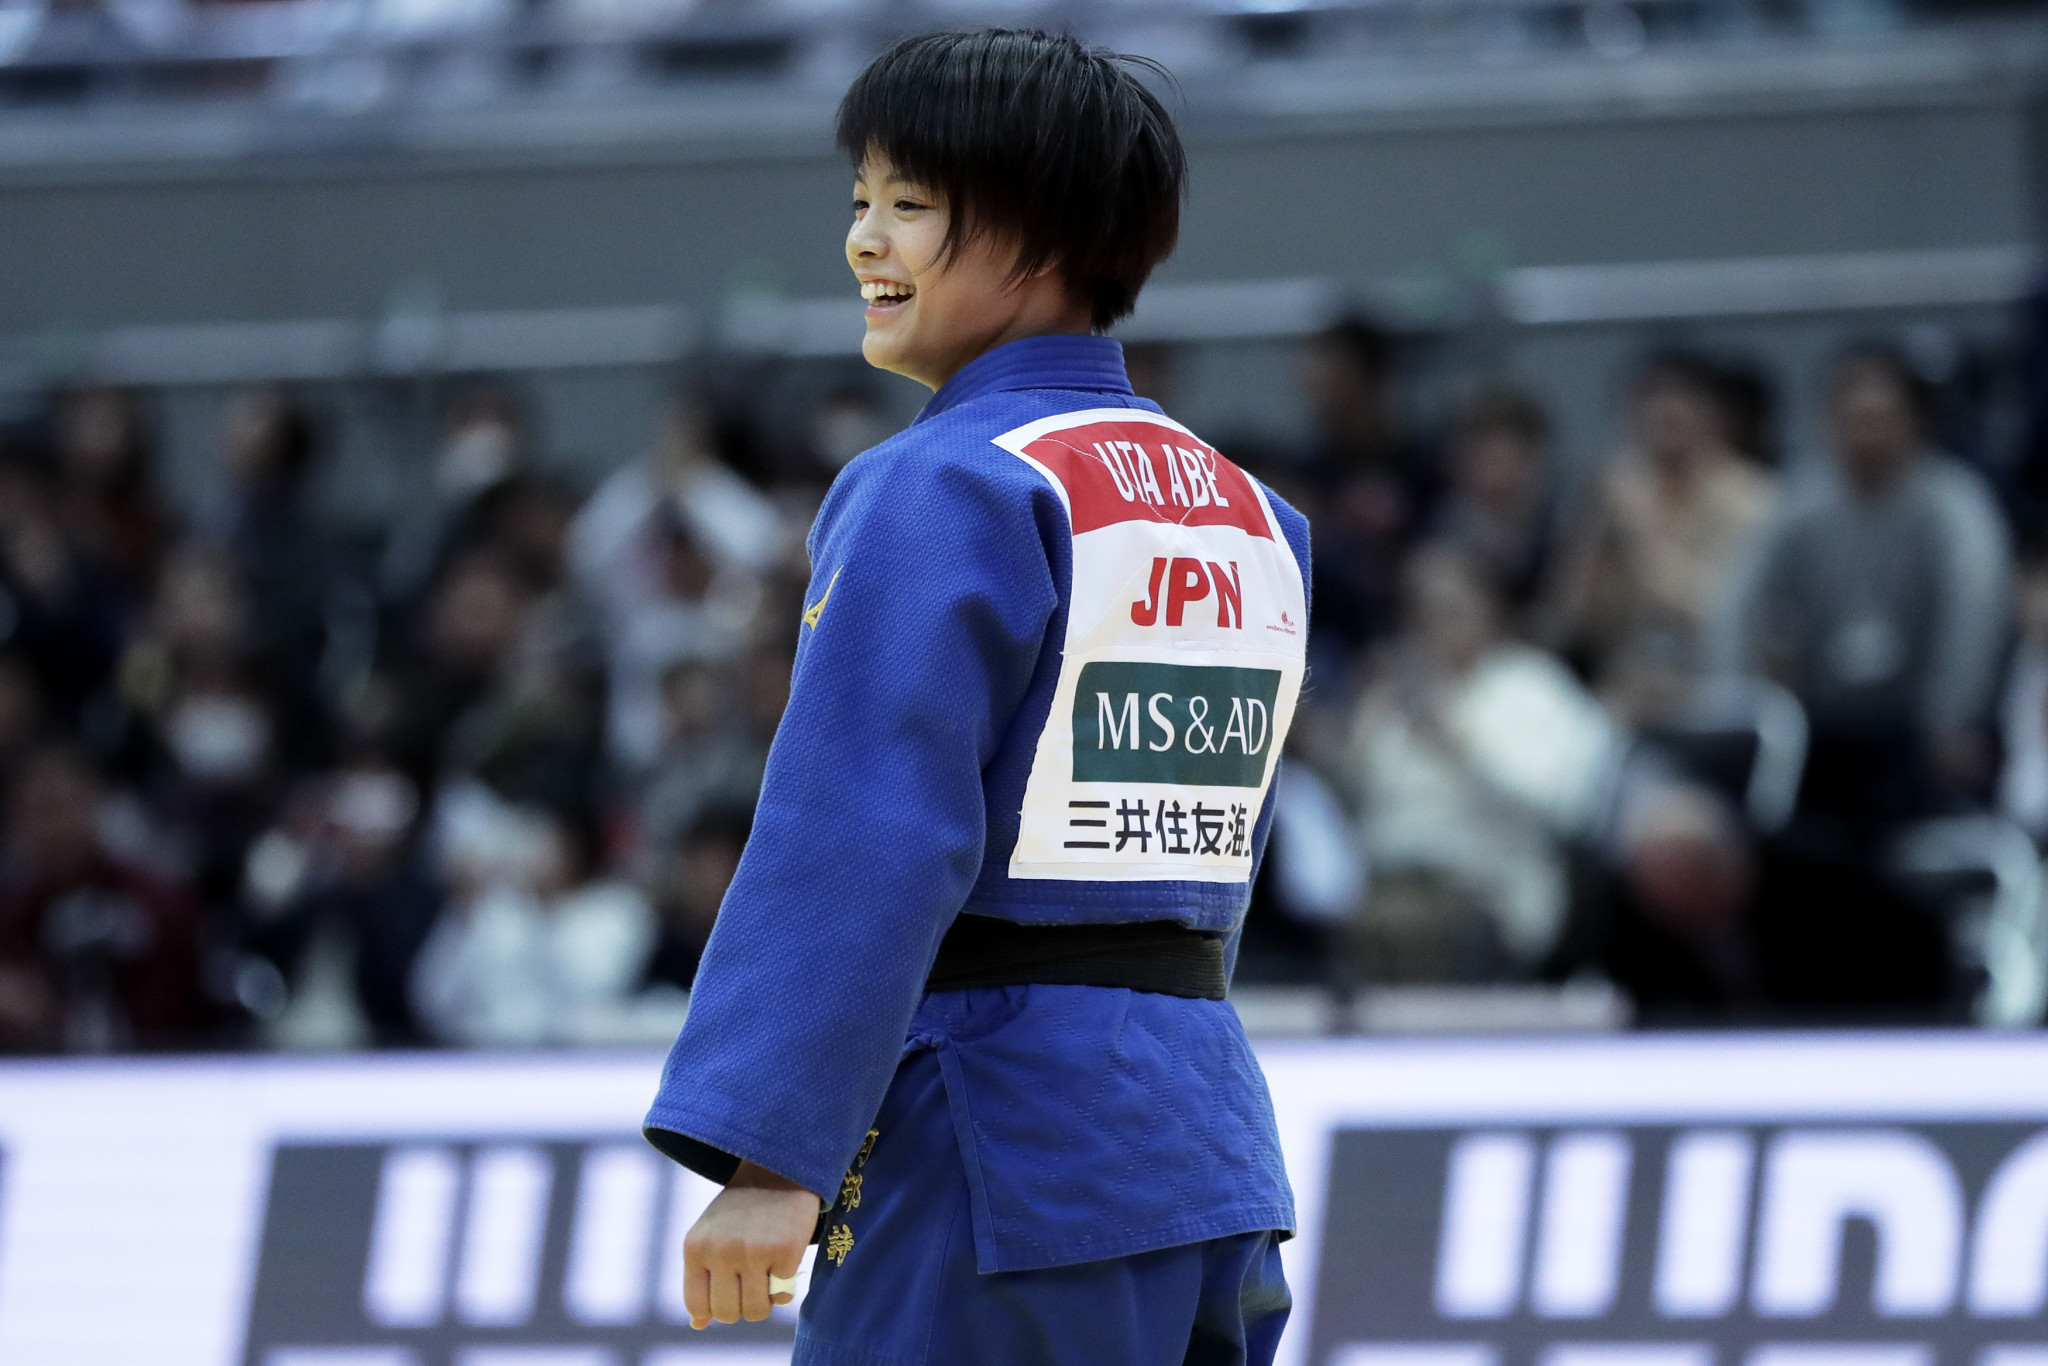 Japan's Abe among three world champions set to compete at IJF Grand Prix in Hohhot